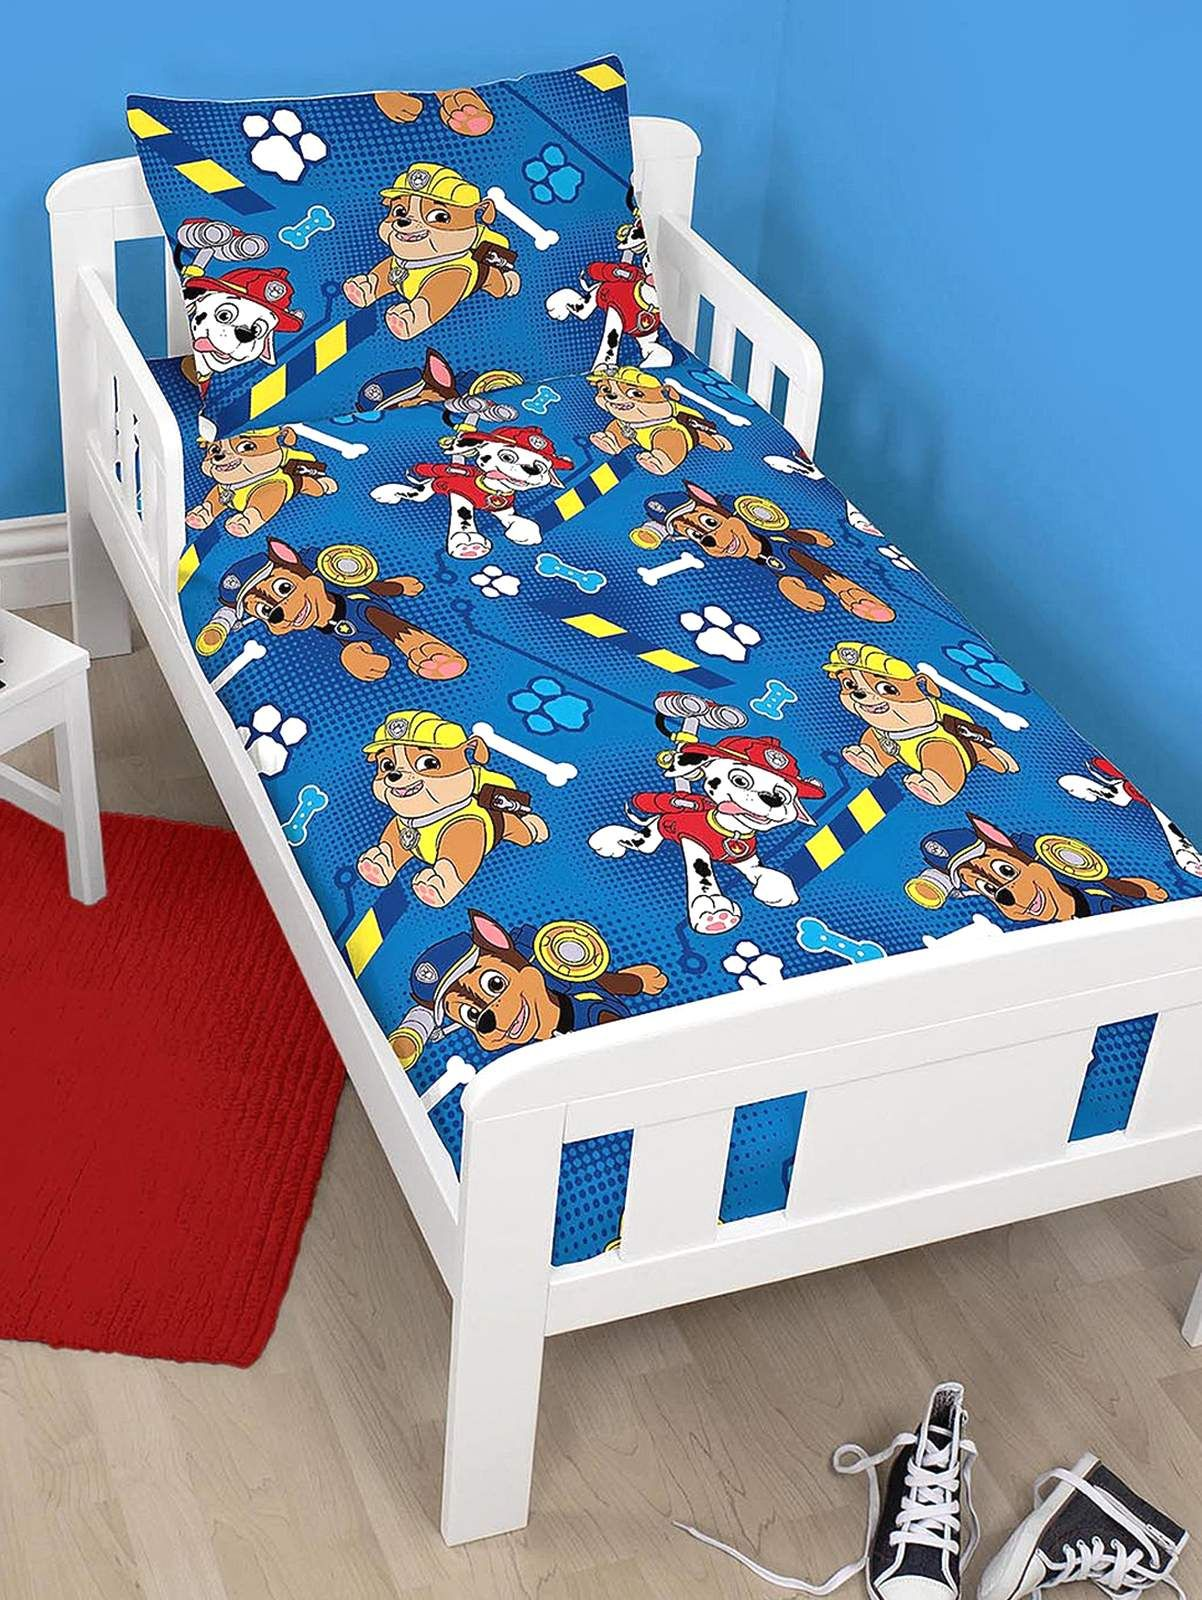 Paw Patrol Toddler Bedding Sets Click Image To Read More